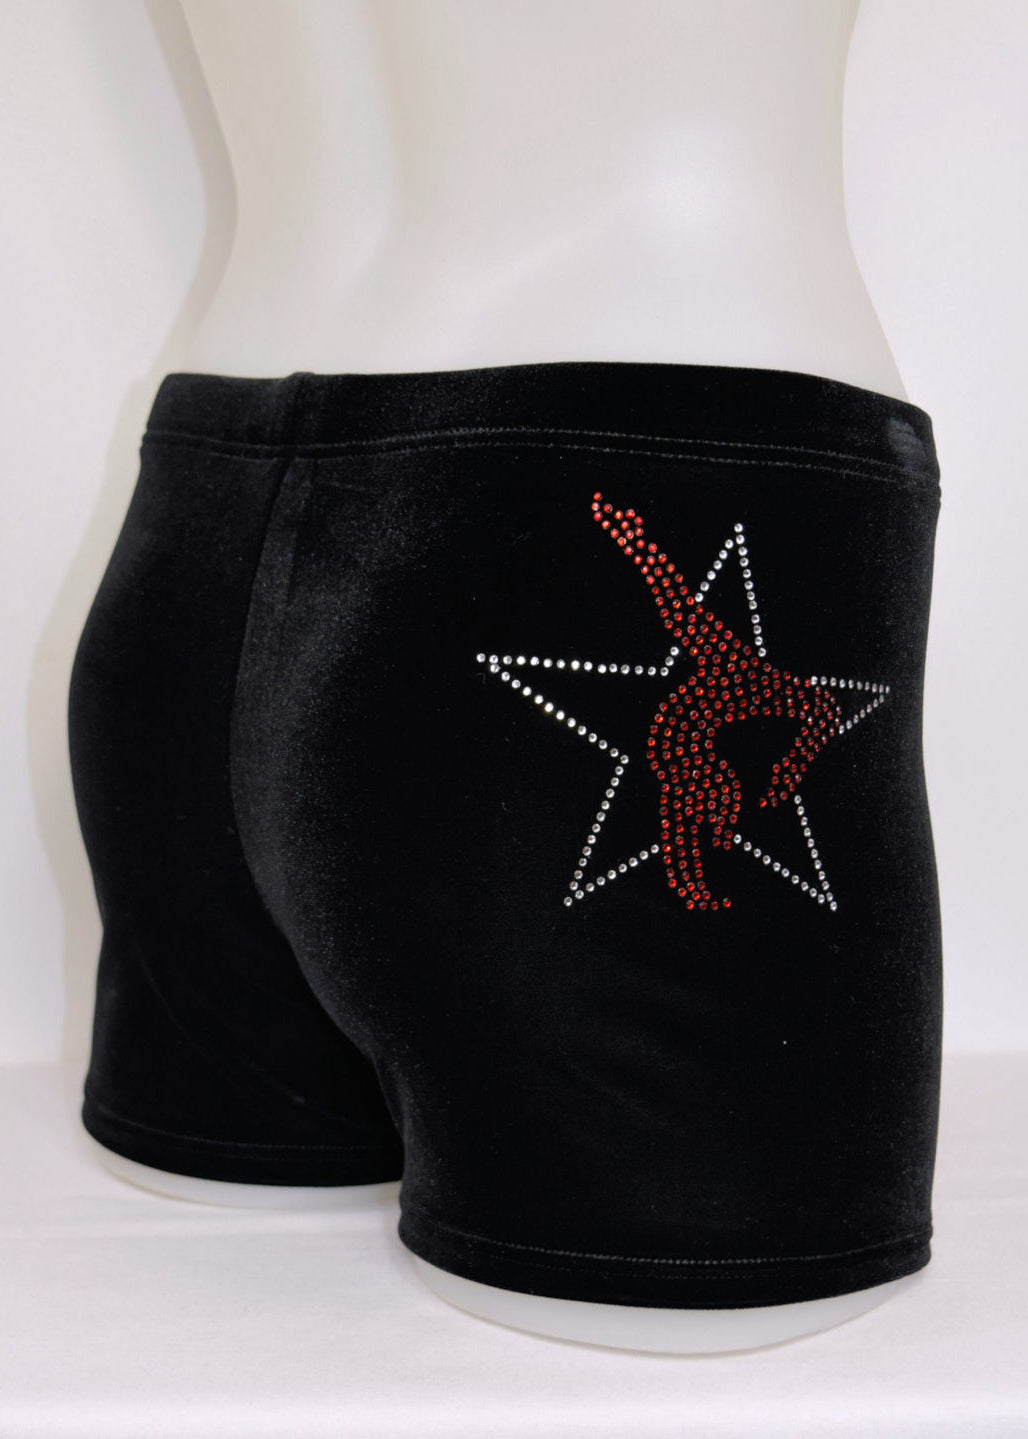 RS Gymwear Australia. Star Gymnast shorts. Velvet shorts with motif. Dance shorts. Gymnastics shorts.